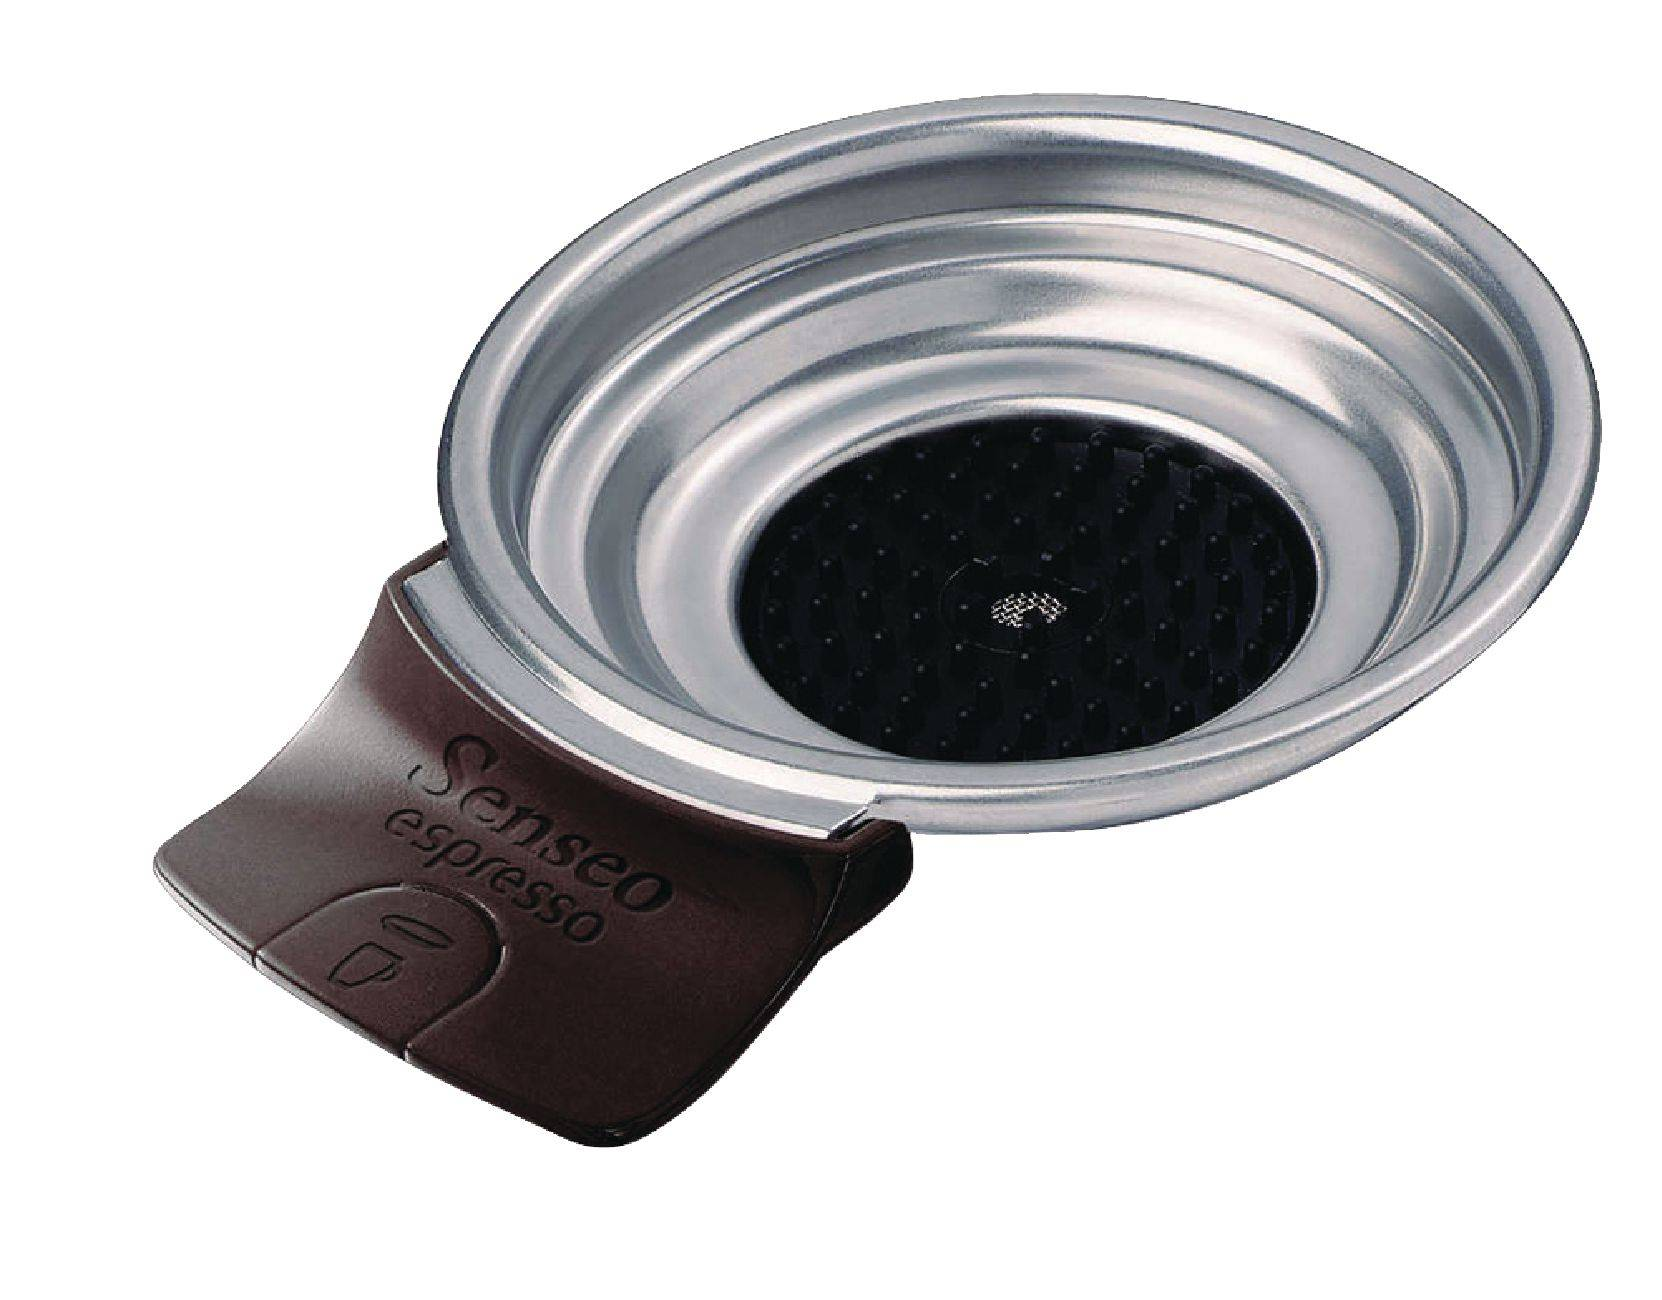 Philips Espresso podholder for: HD 7822 and higher